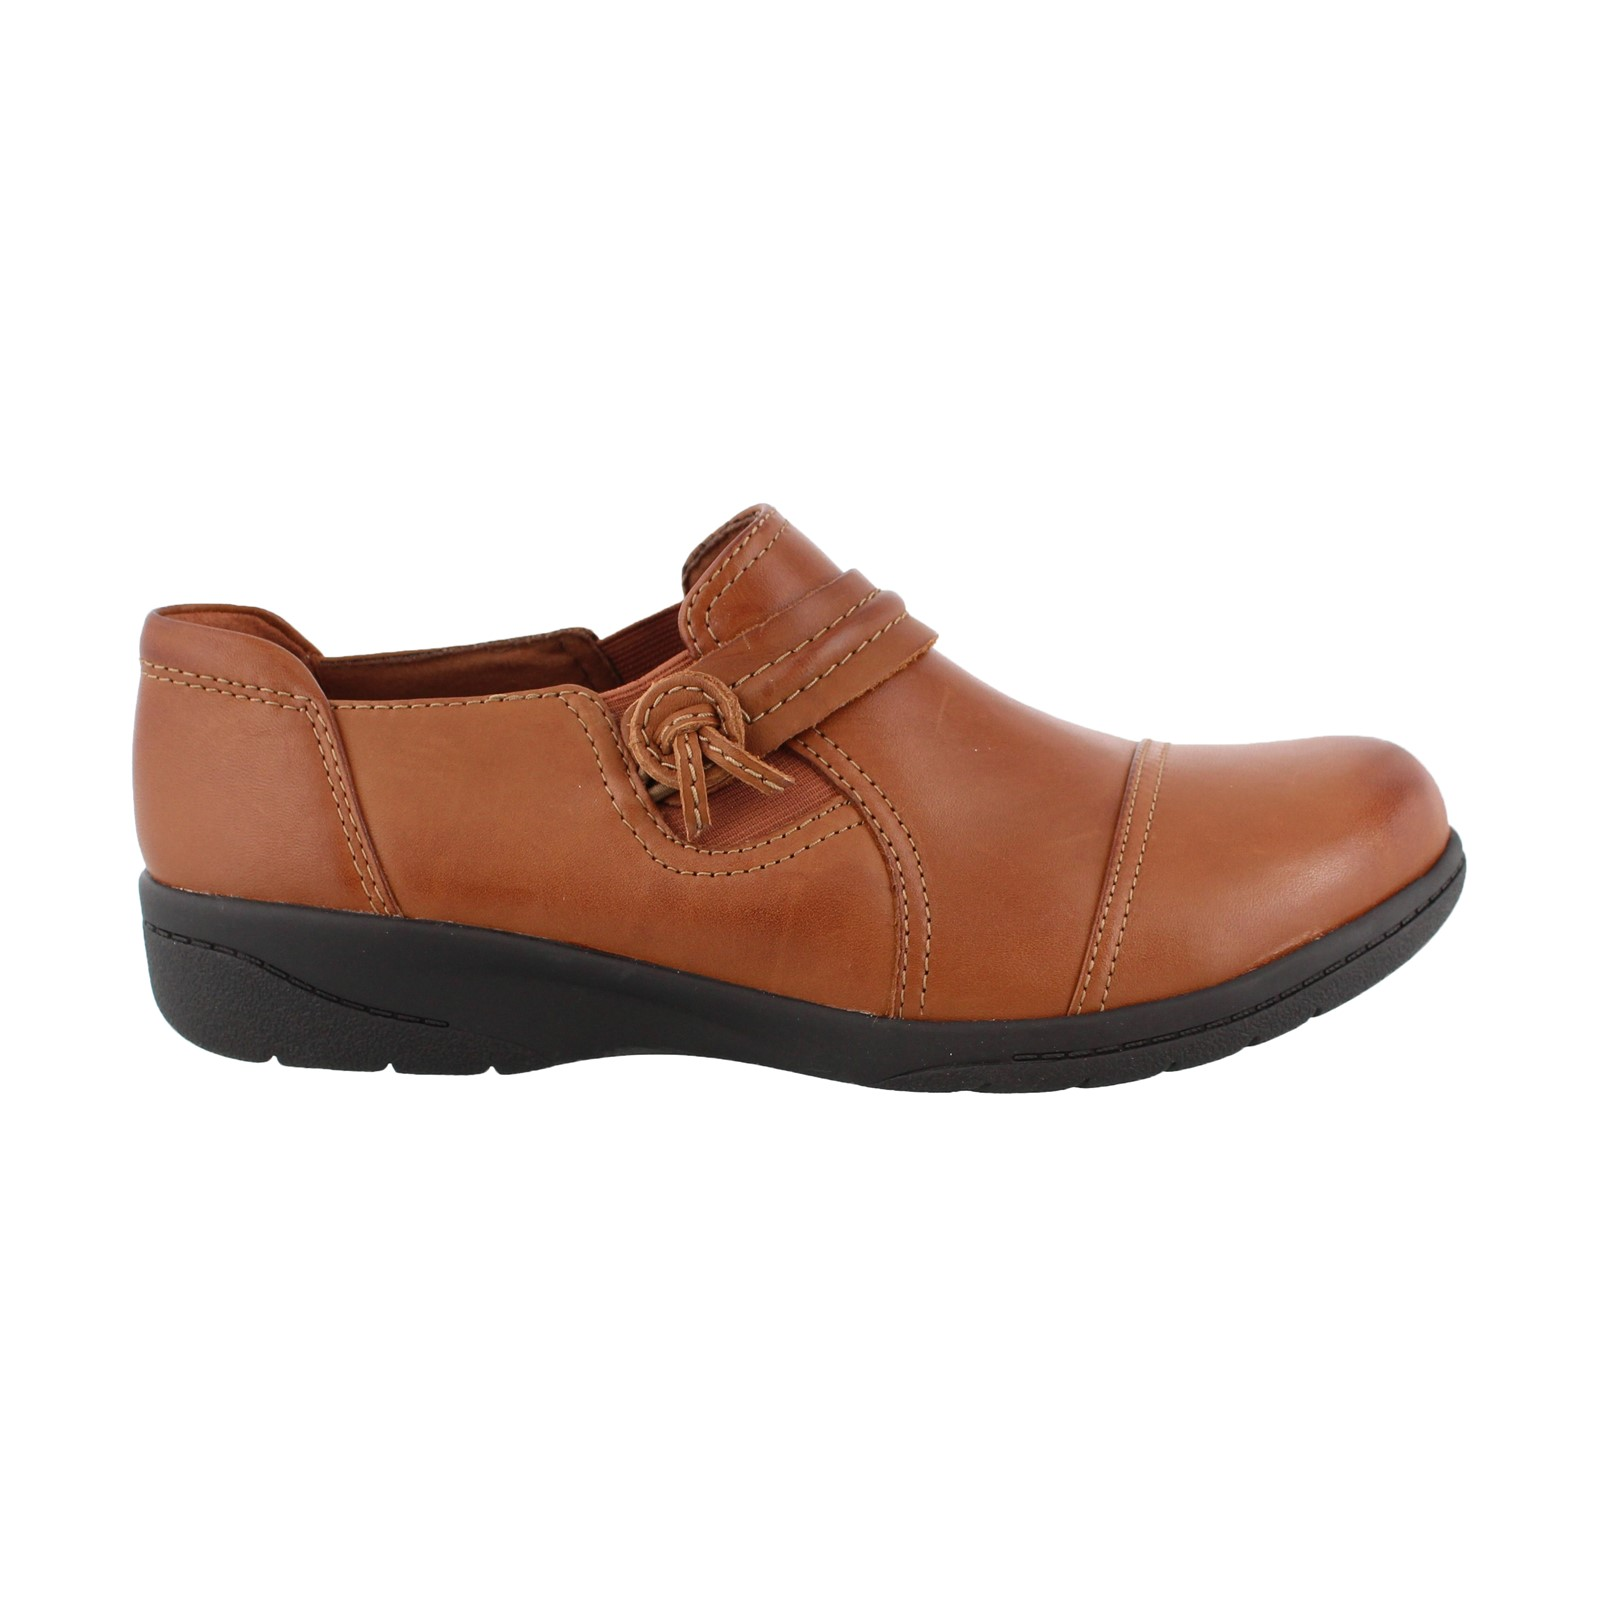 Women's Clarks, Cheyn Madi Slip-On Shoe